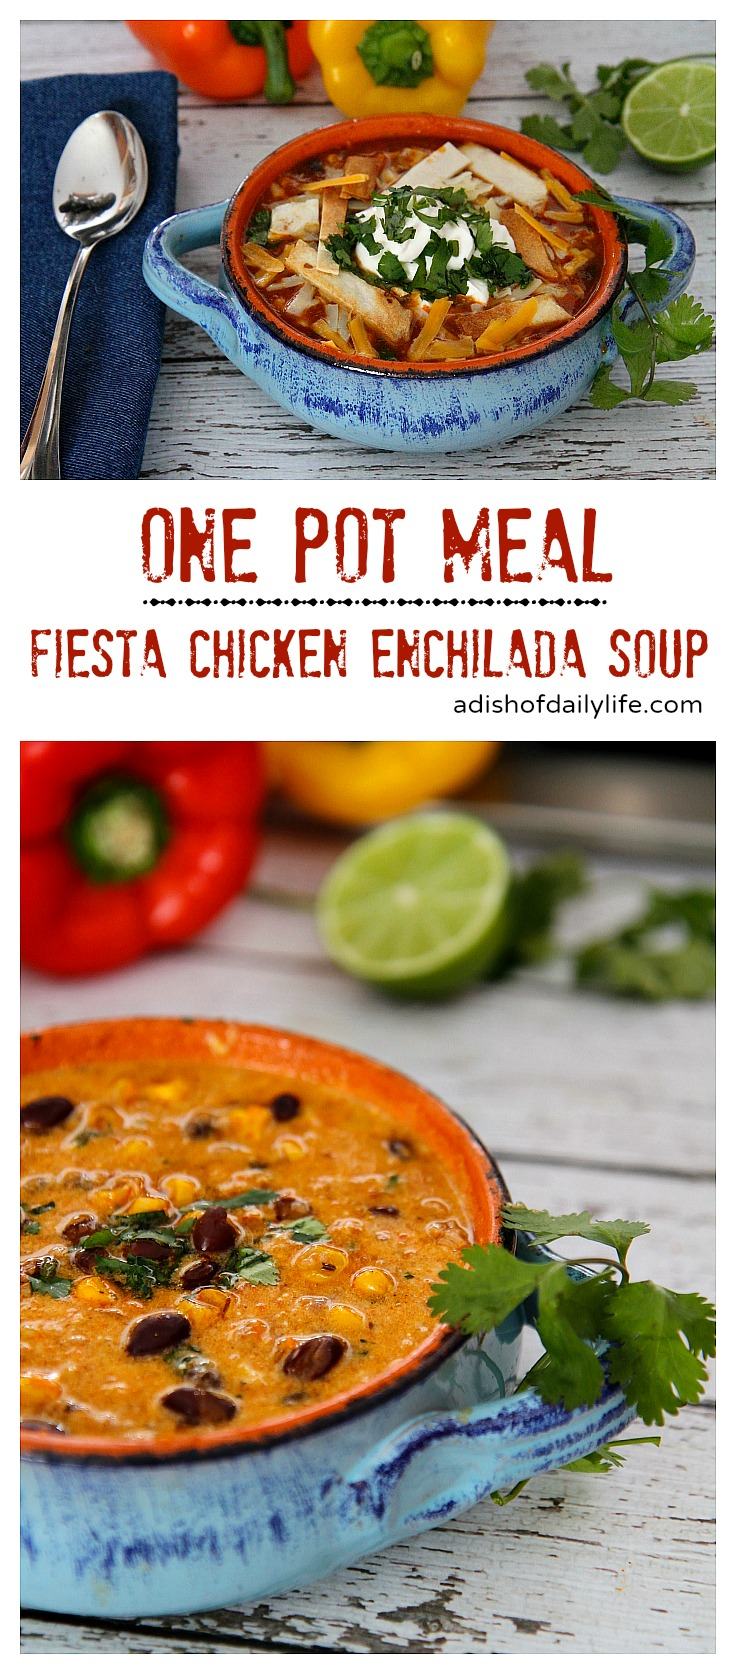 This one pot Fiesta Chicken Enchilada Soup can be ready in 30 minutes. Perfect for families on the go! #OnePotMeal #30MinMeal